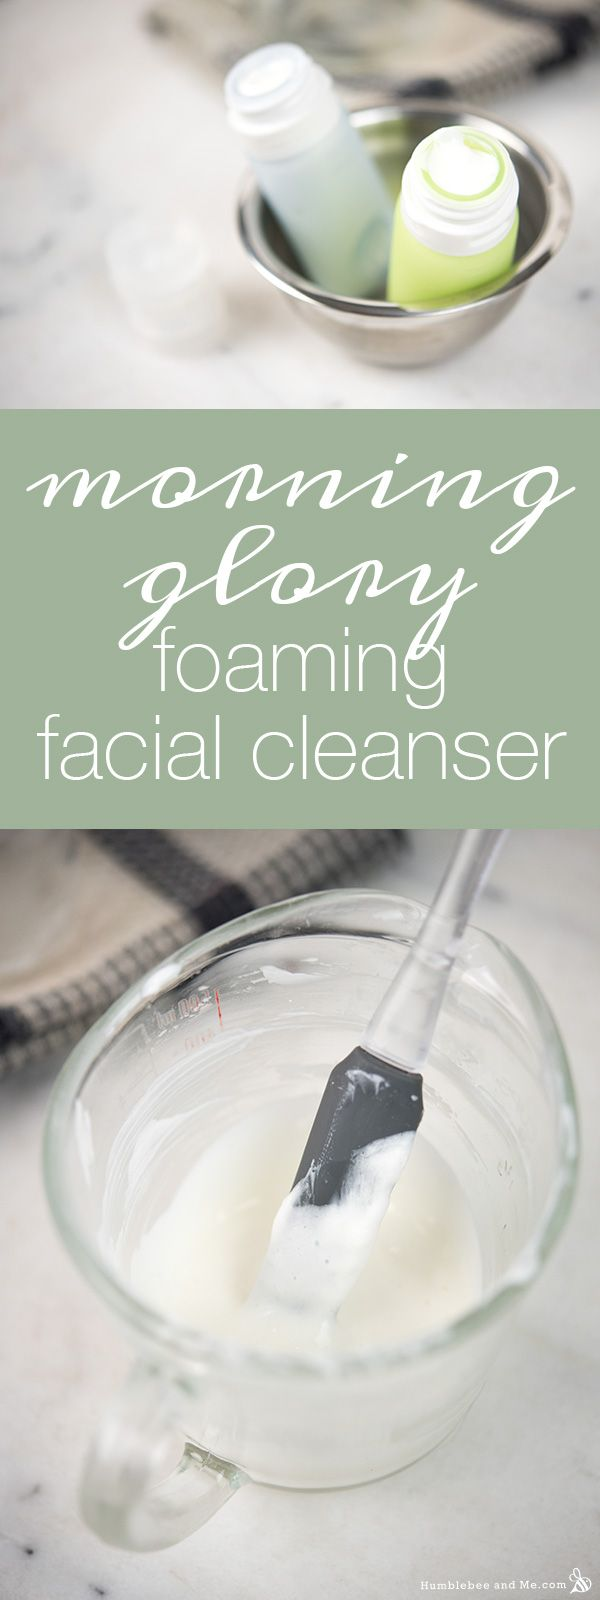 Morning Glory Foaming Facial Cleanser | Humblebee & Me